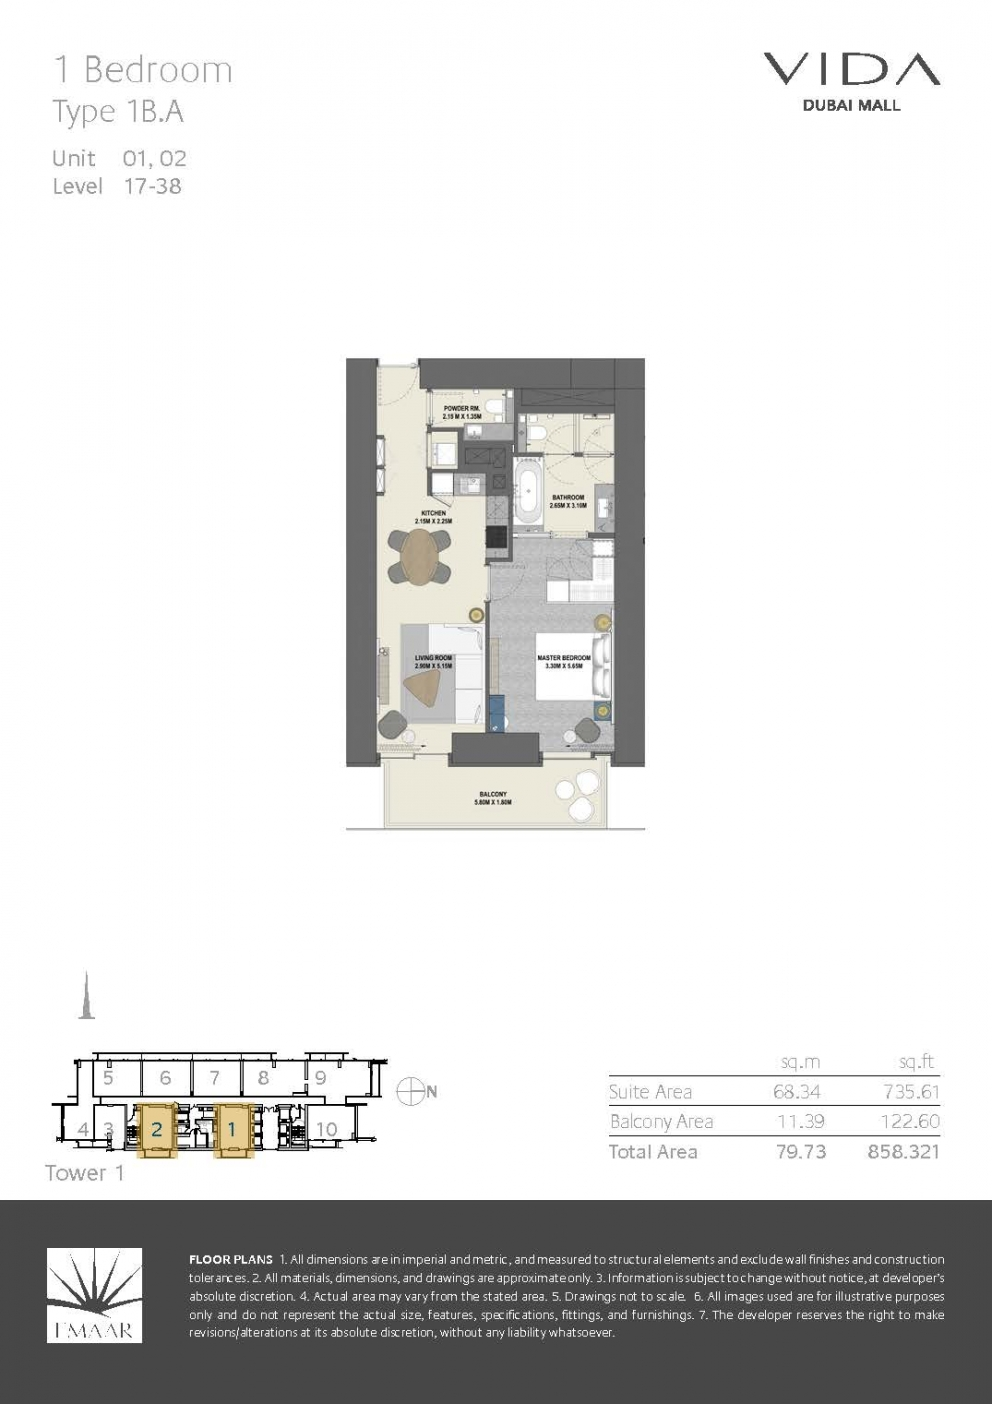 Vida Dubai Mall - Floor Plans T1 Page 02